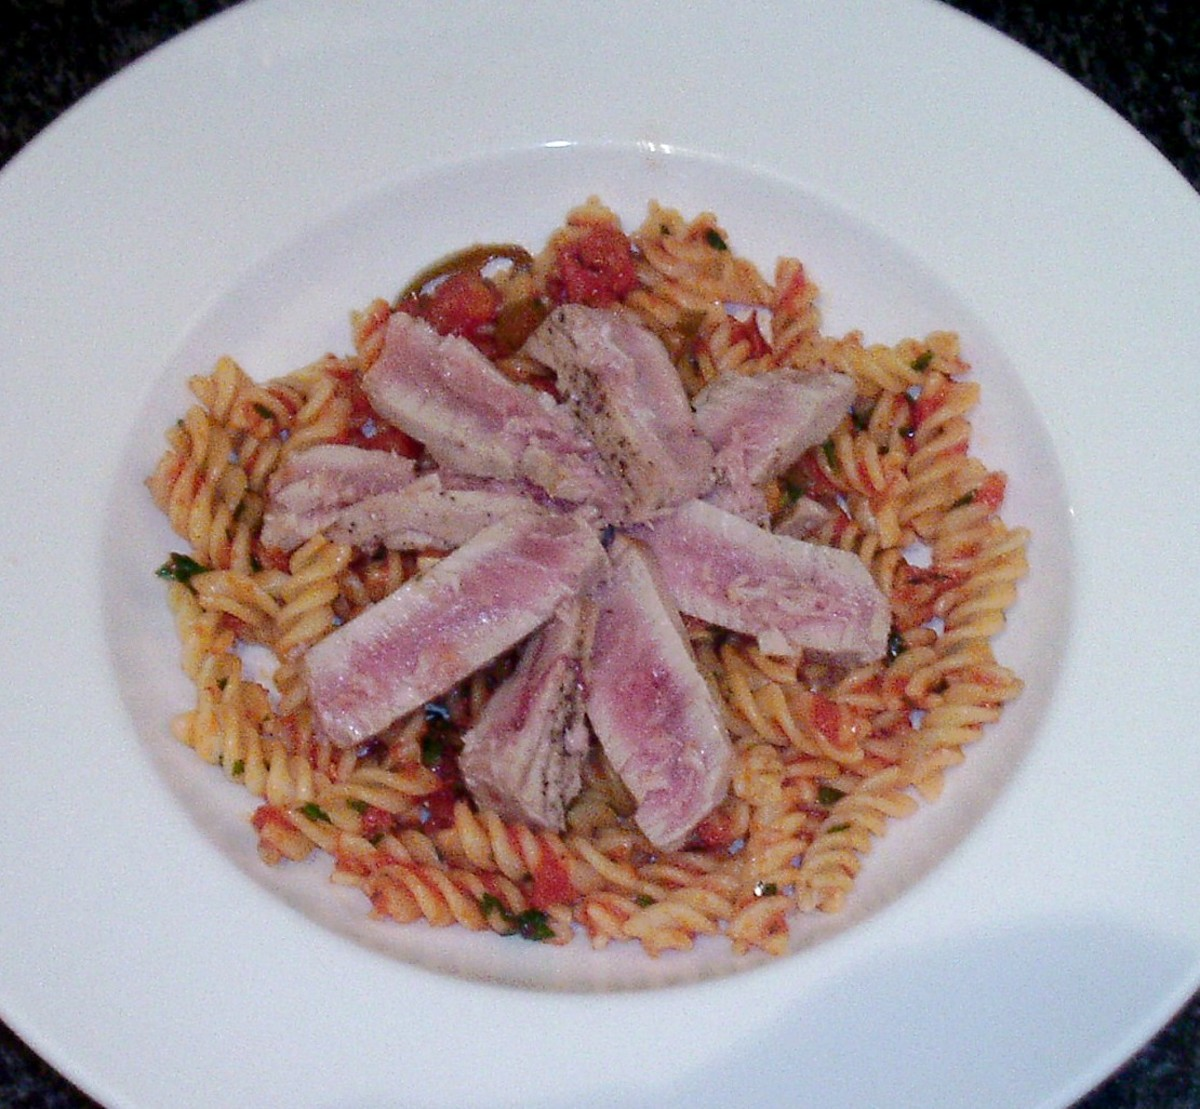 Sliced tuna is arranged on spicy tomato fusilli pasta bed